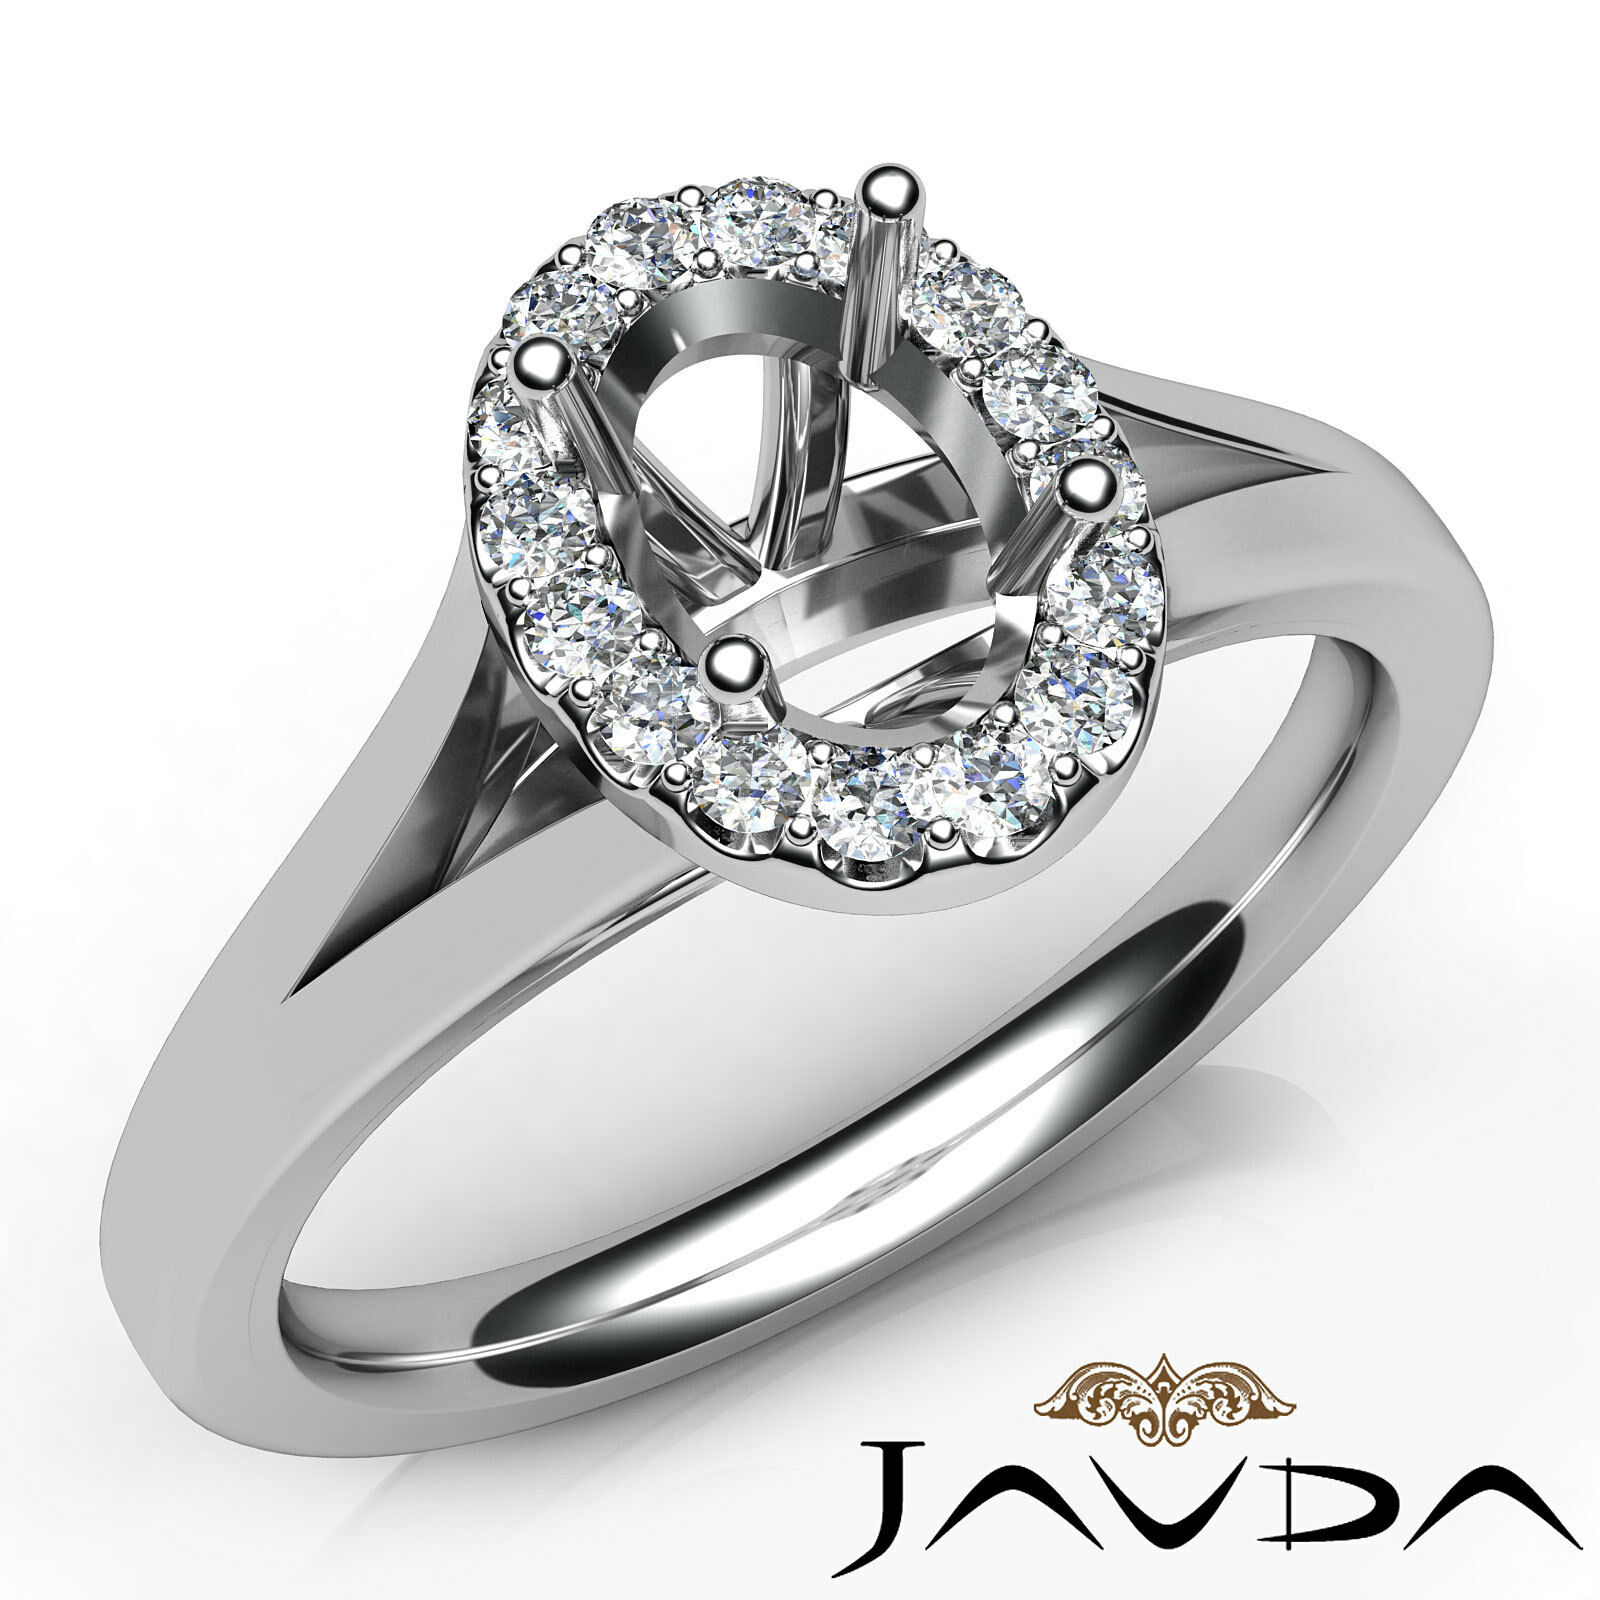 Oval Diamond Semi Mount Engagement 14k White gold Halo Pave Setting Ring 0.2Ct